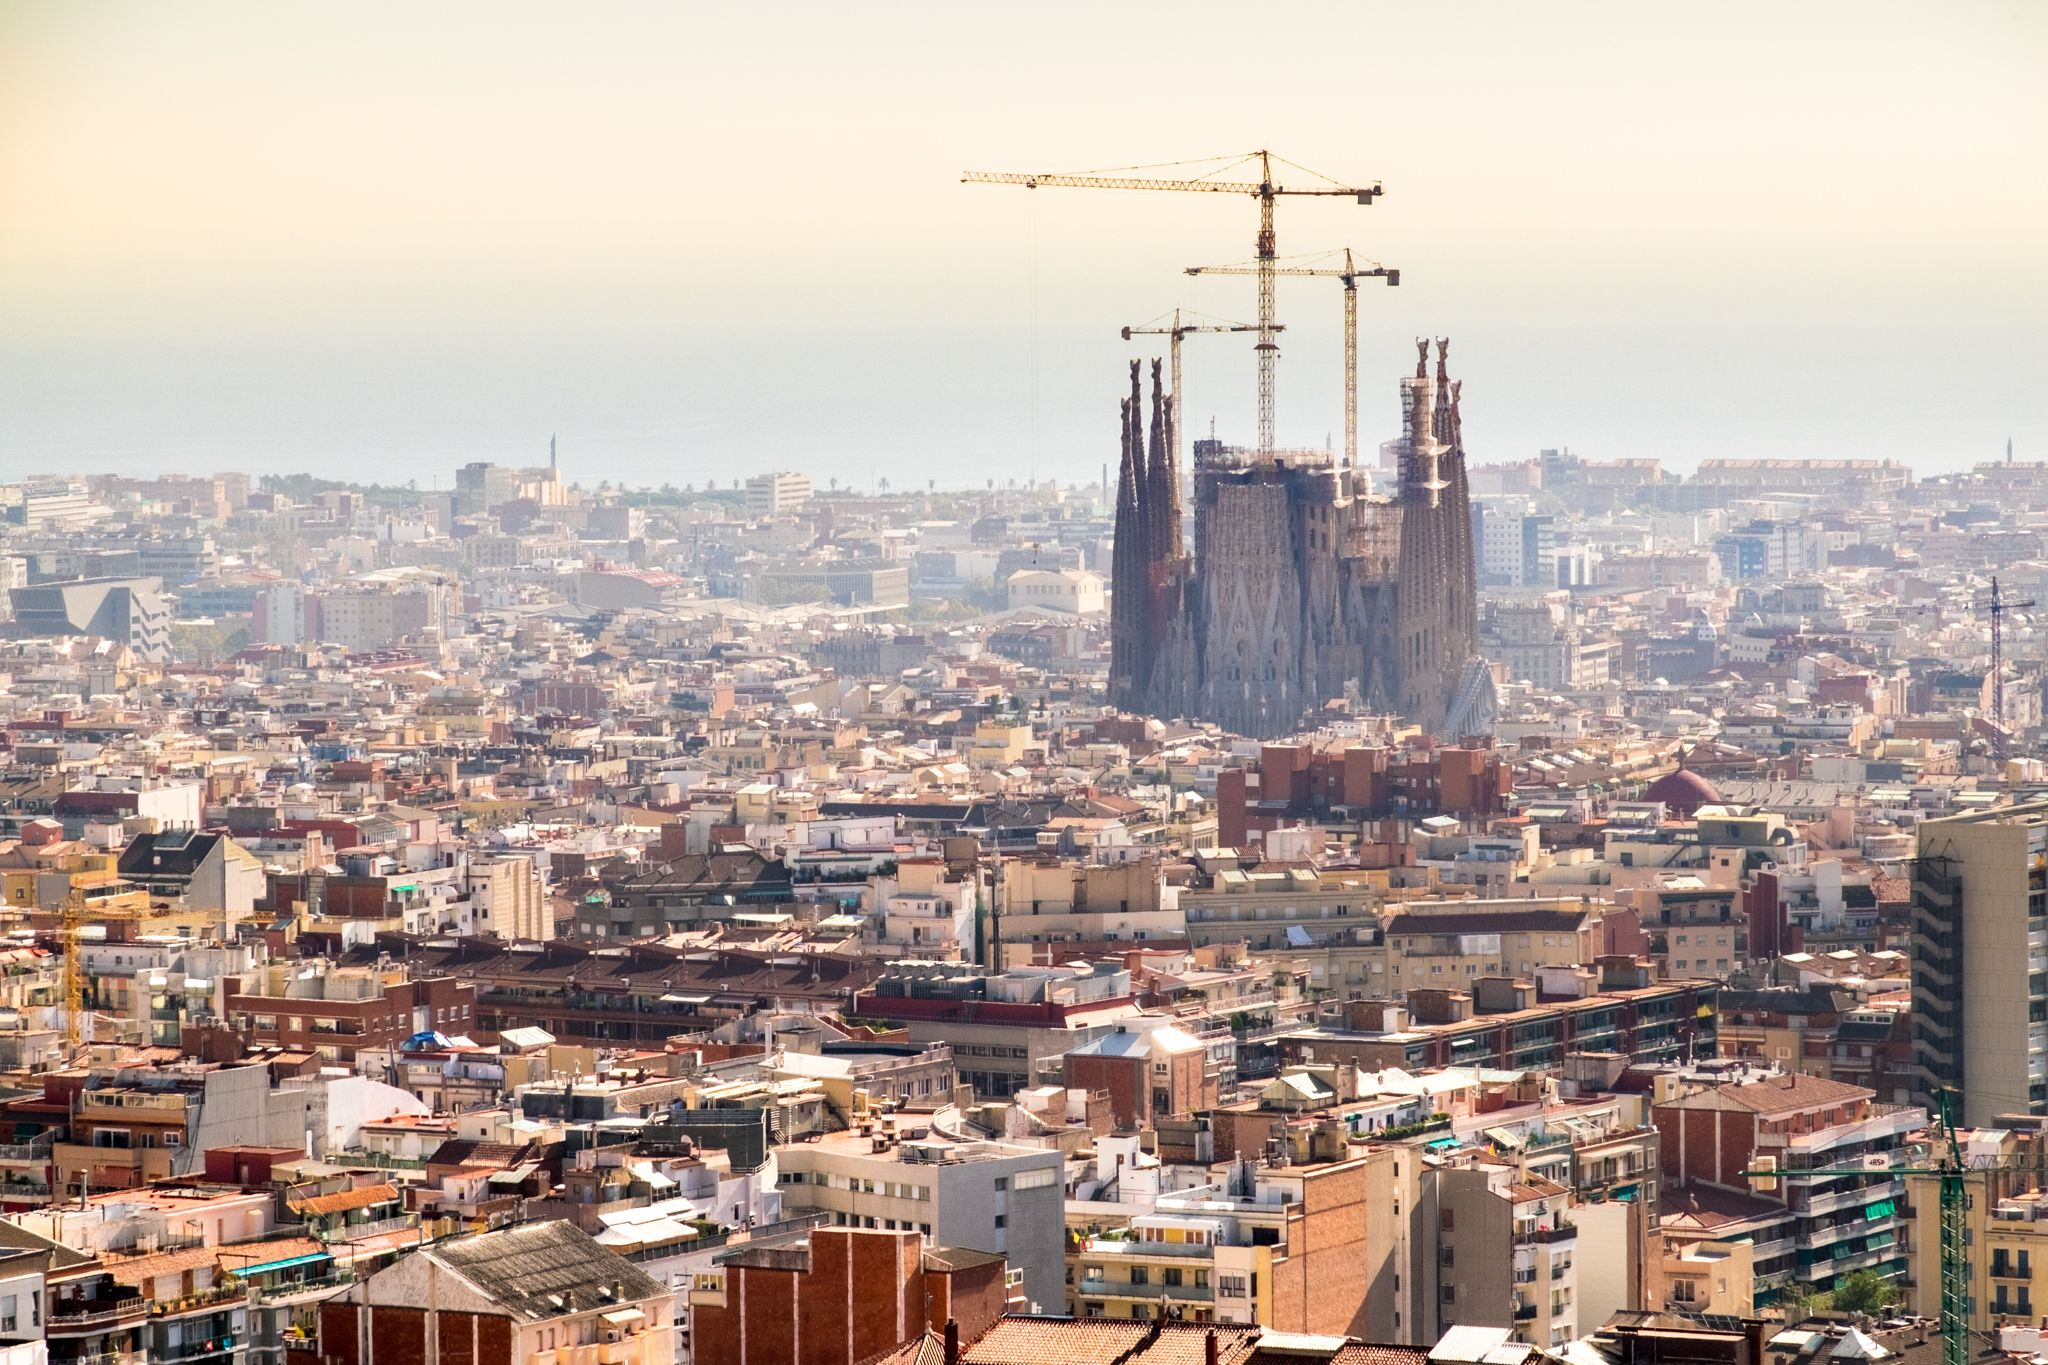 Sagrada Familia from afar